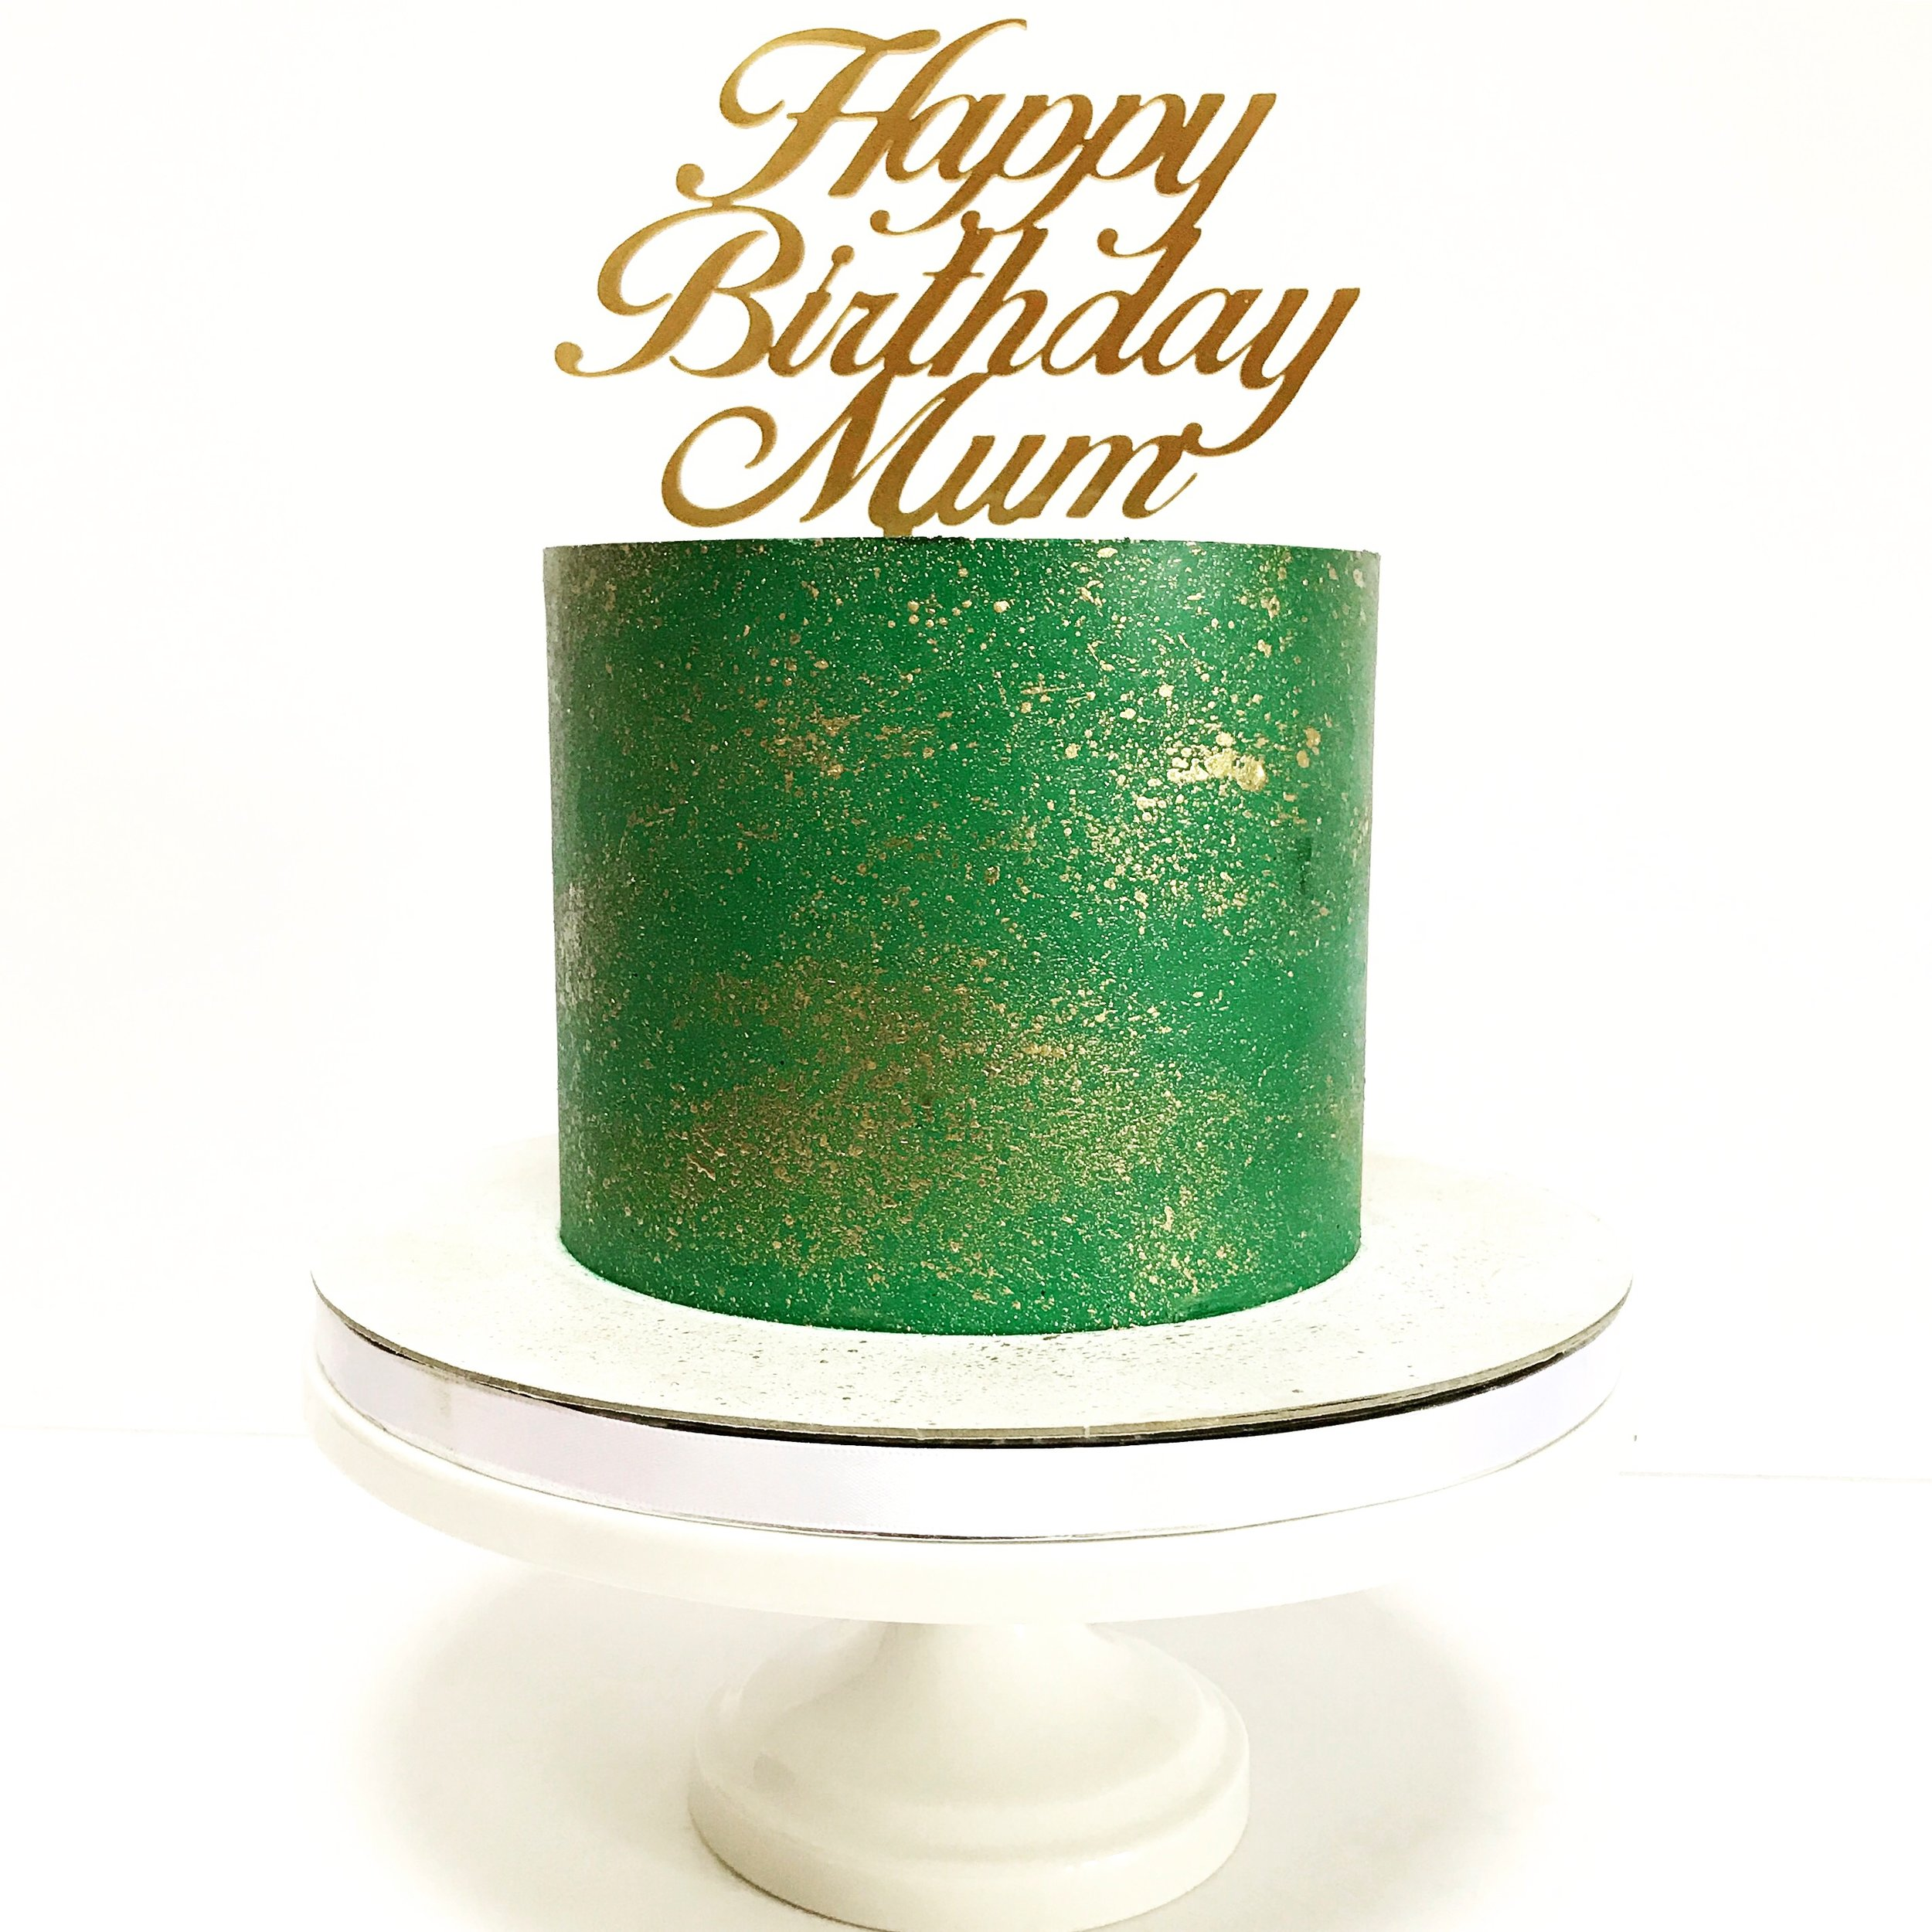 Emerald and Gold Buttercream Cake.JPG